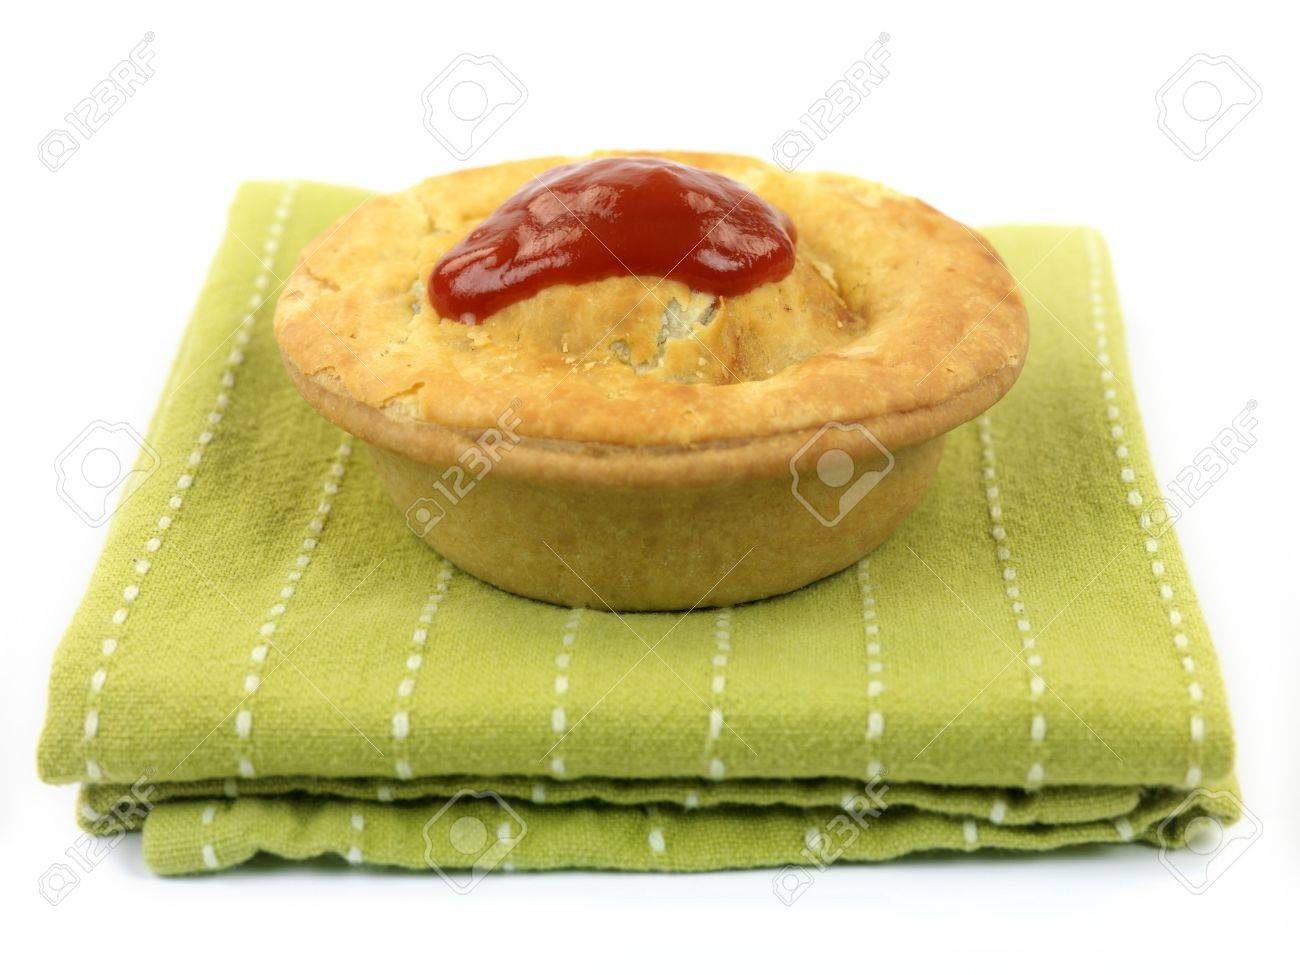 An Australian meat pie served on a napkin isolated against a white background Stock Photo - 6437337